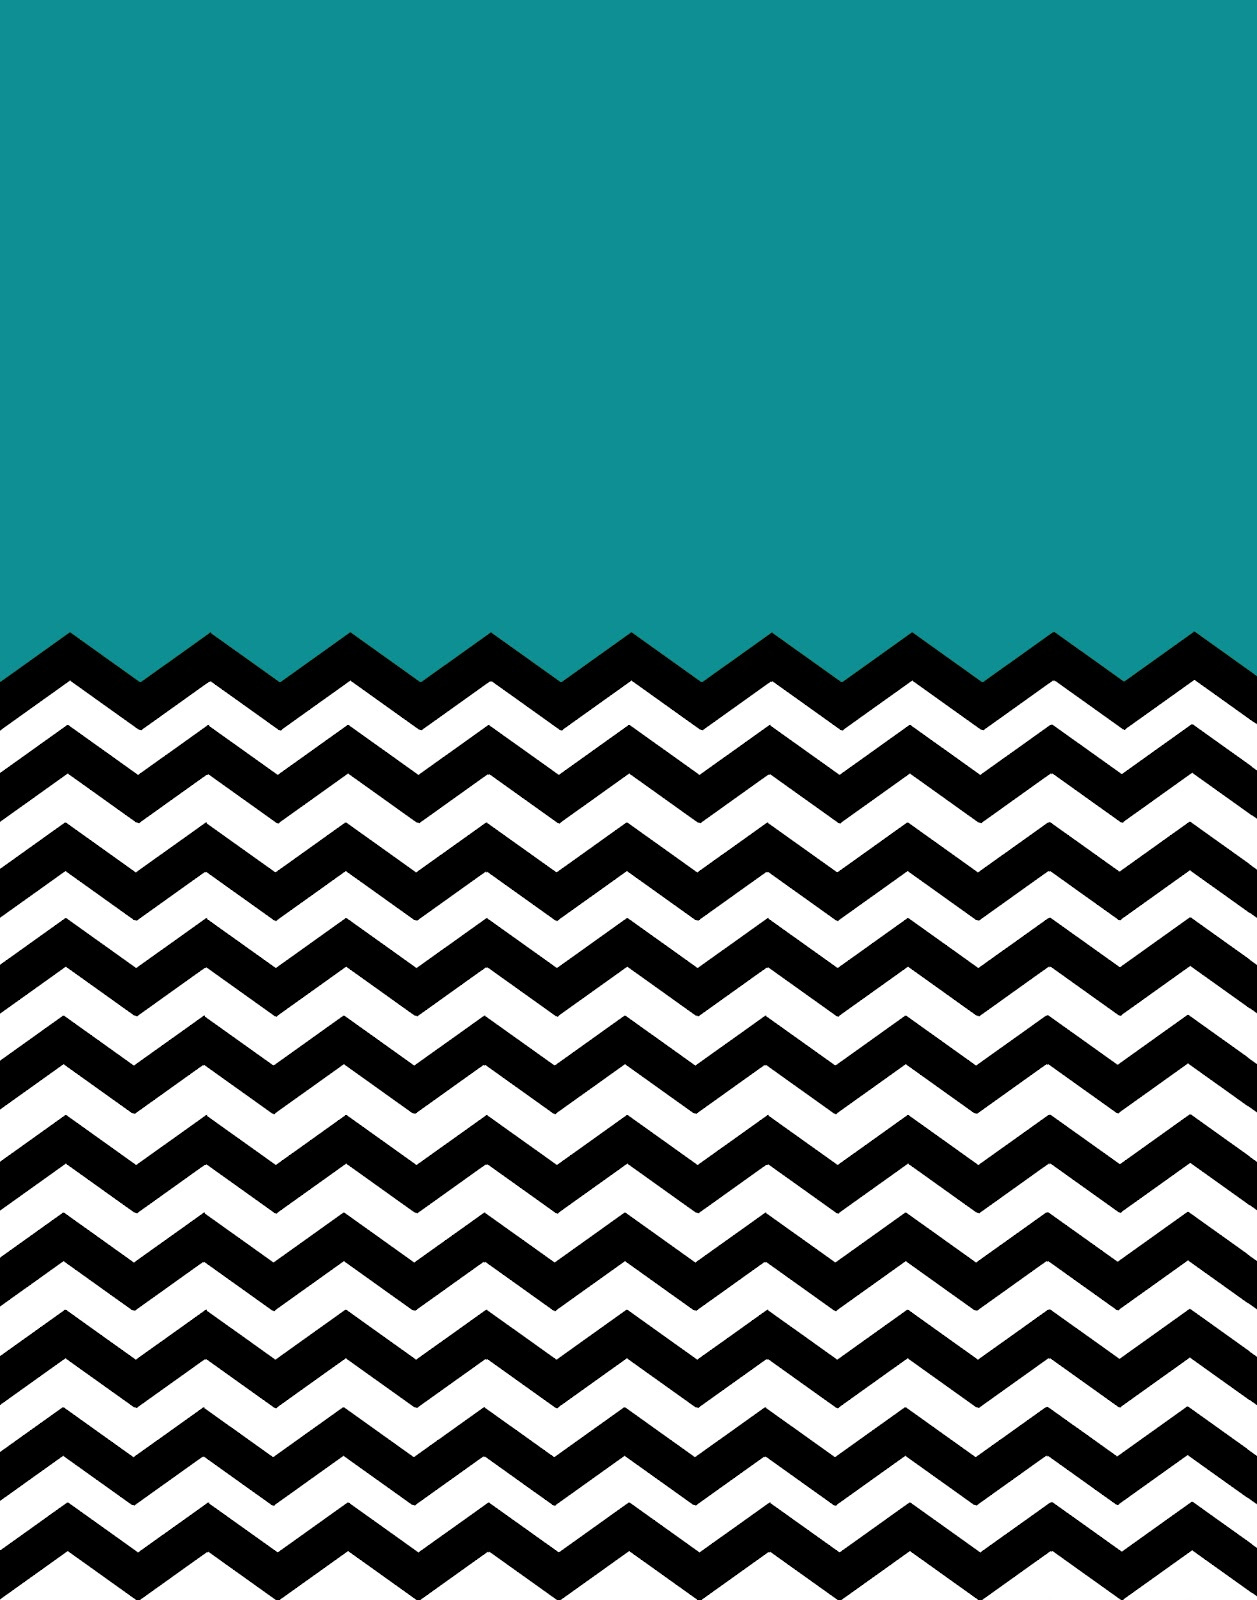 chevron pattern background - HD 3300×4200